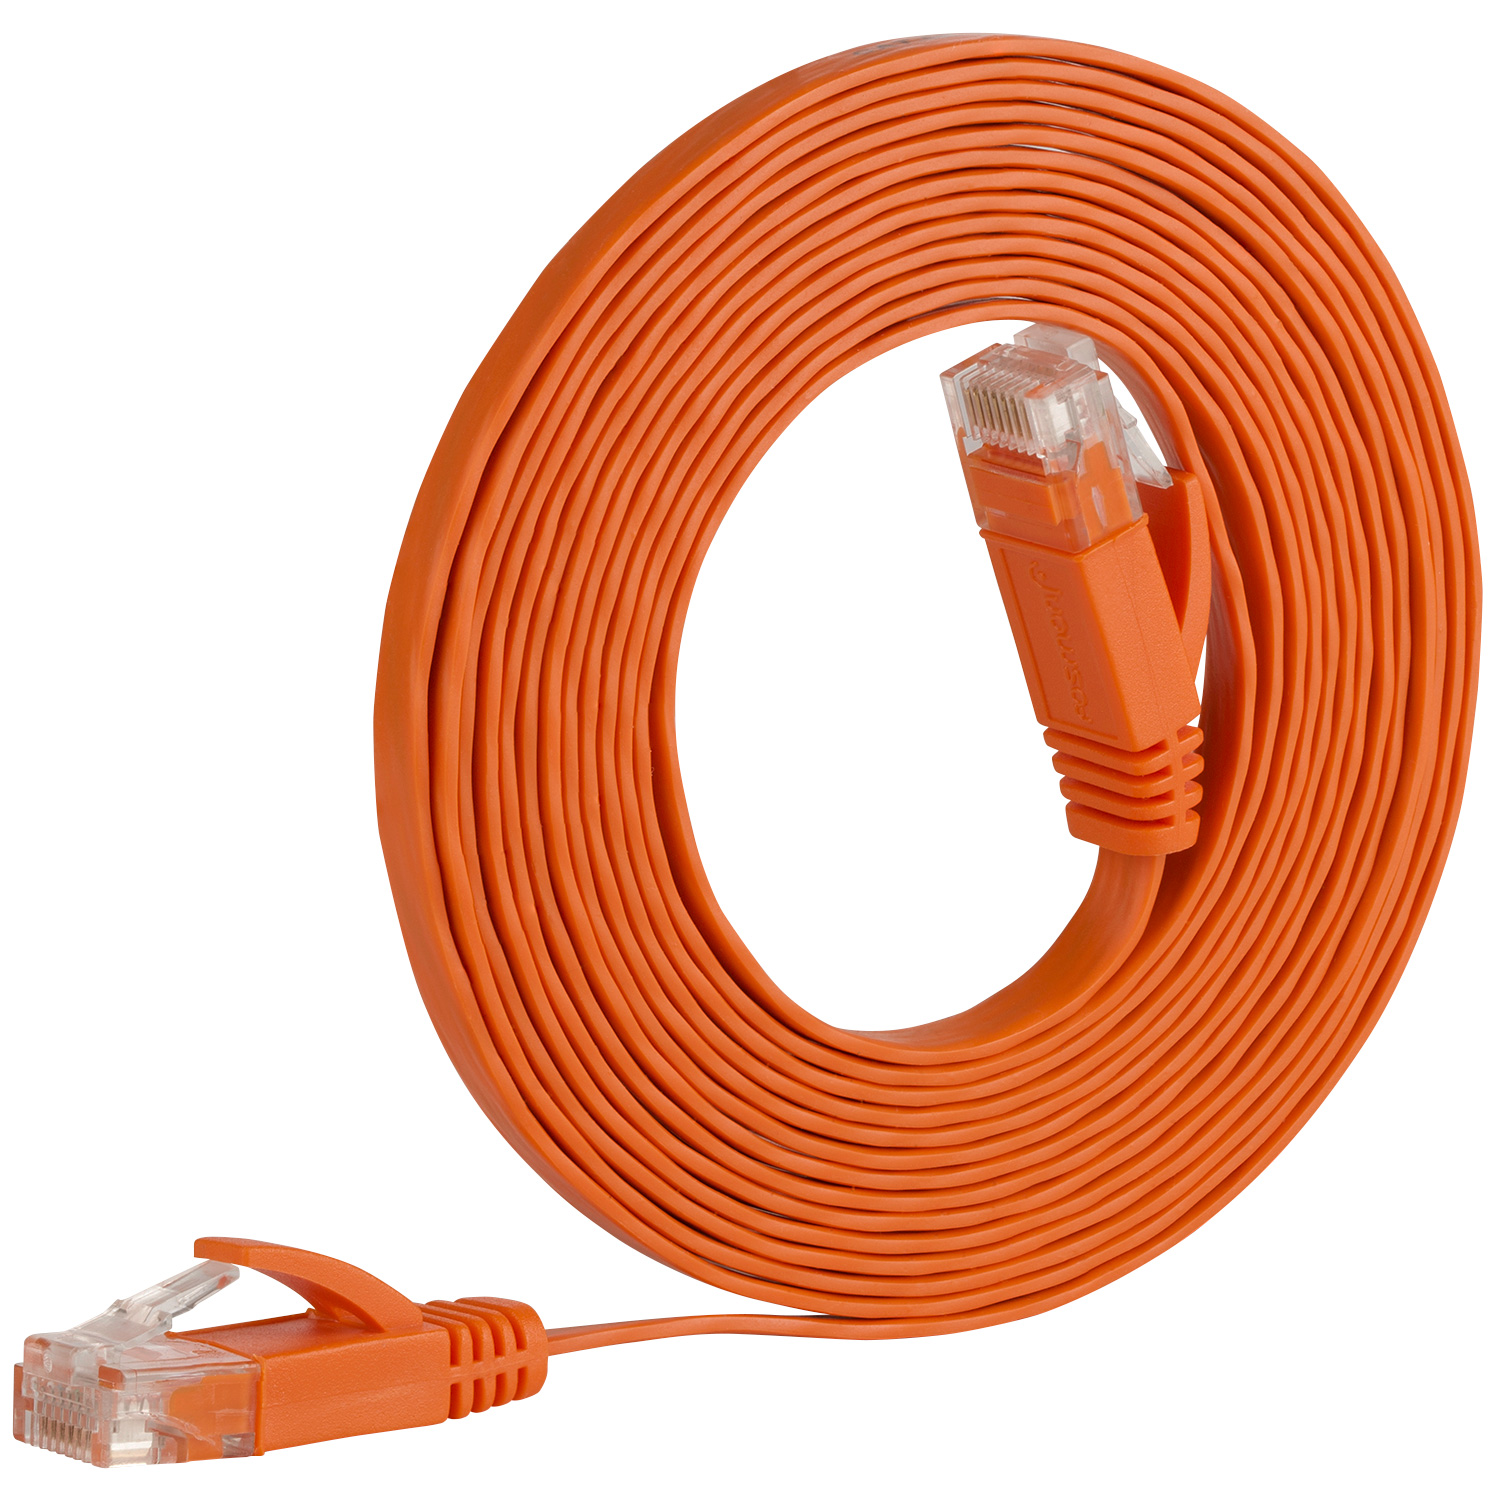 Fosmon 10FT Cat5e RJ45 FLAT Snaglass Network Ethernet Patch Cable for PC Printer Router Switch Boxes PS3/4 Xbox (Orange)